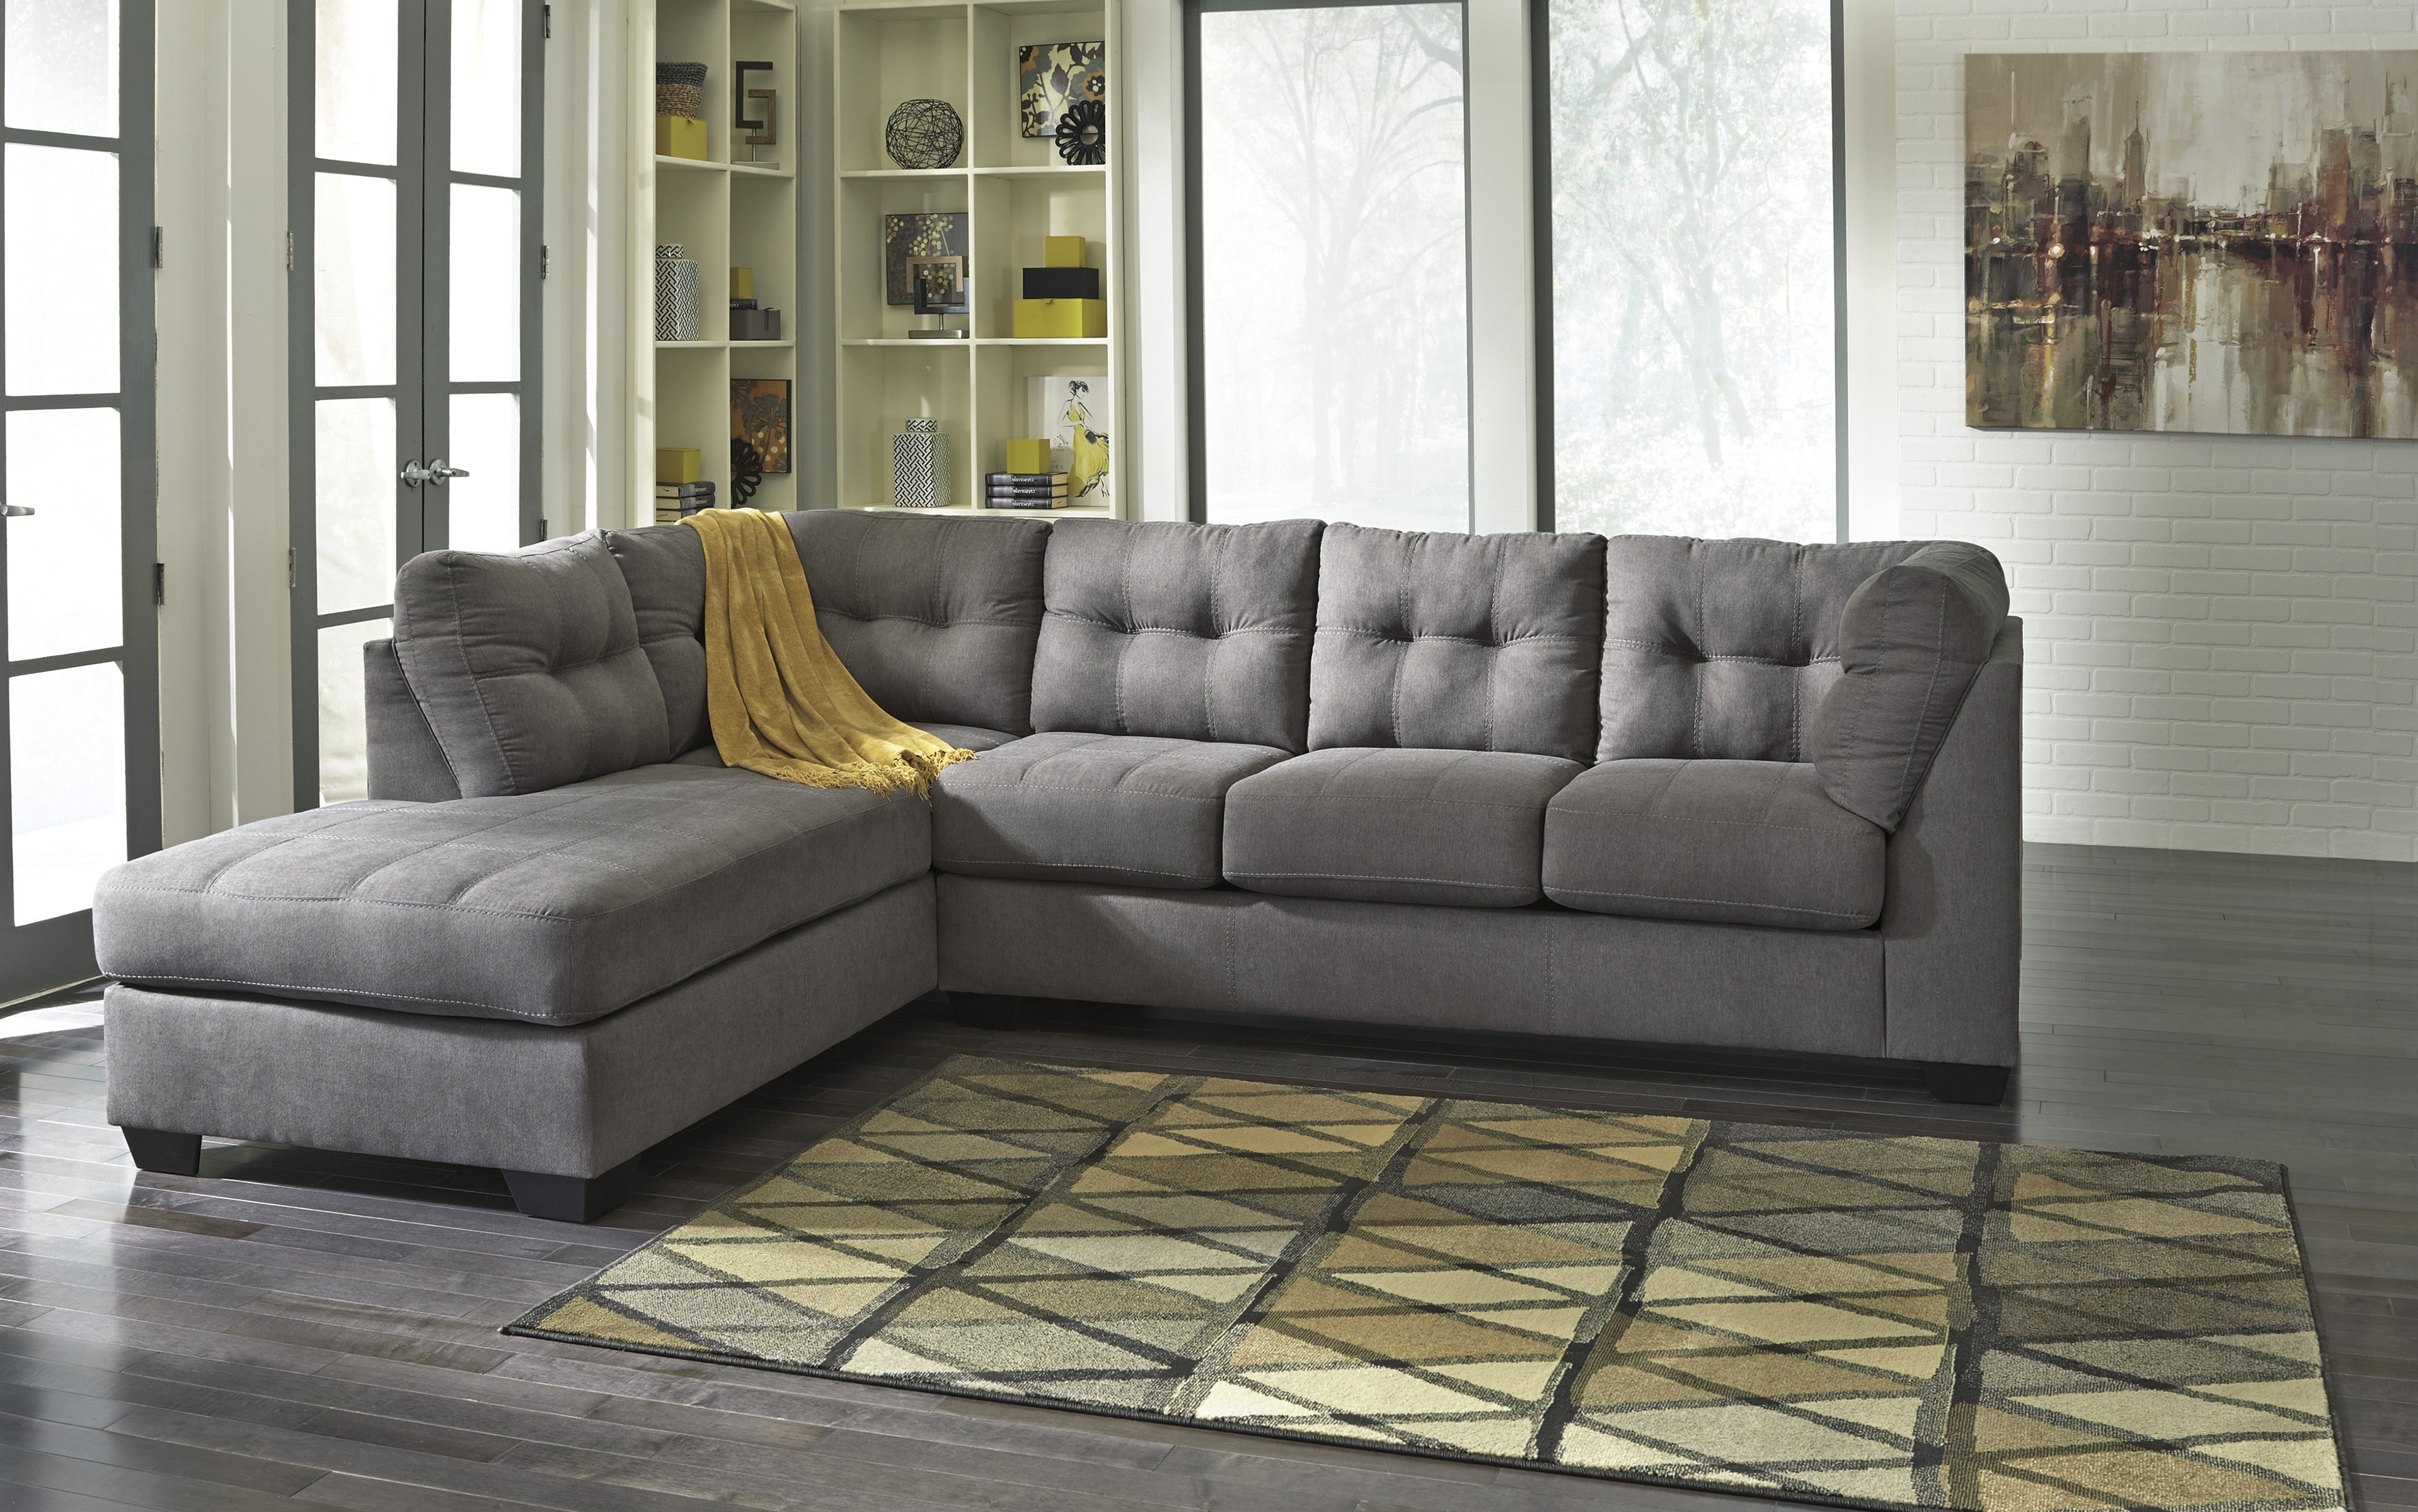 Ashley Furniture Maier Charcoal Raf Chaise Sectional (View 1 of 15)